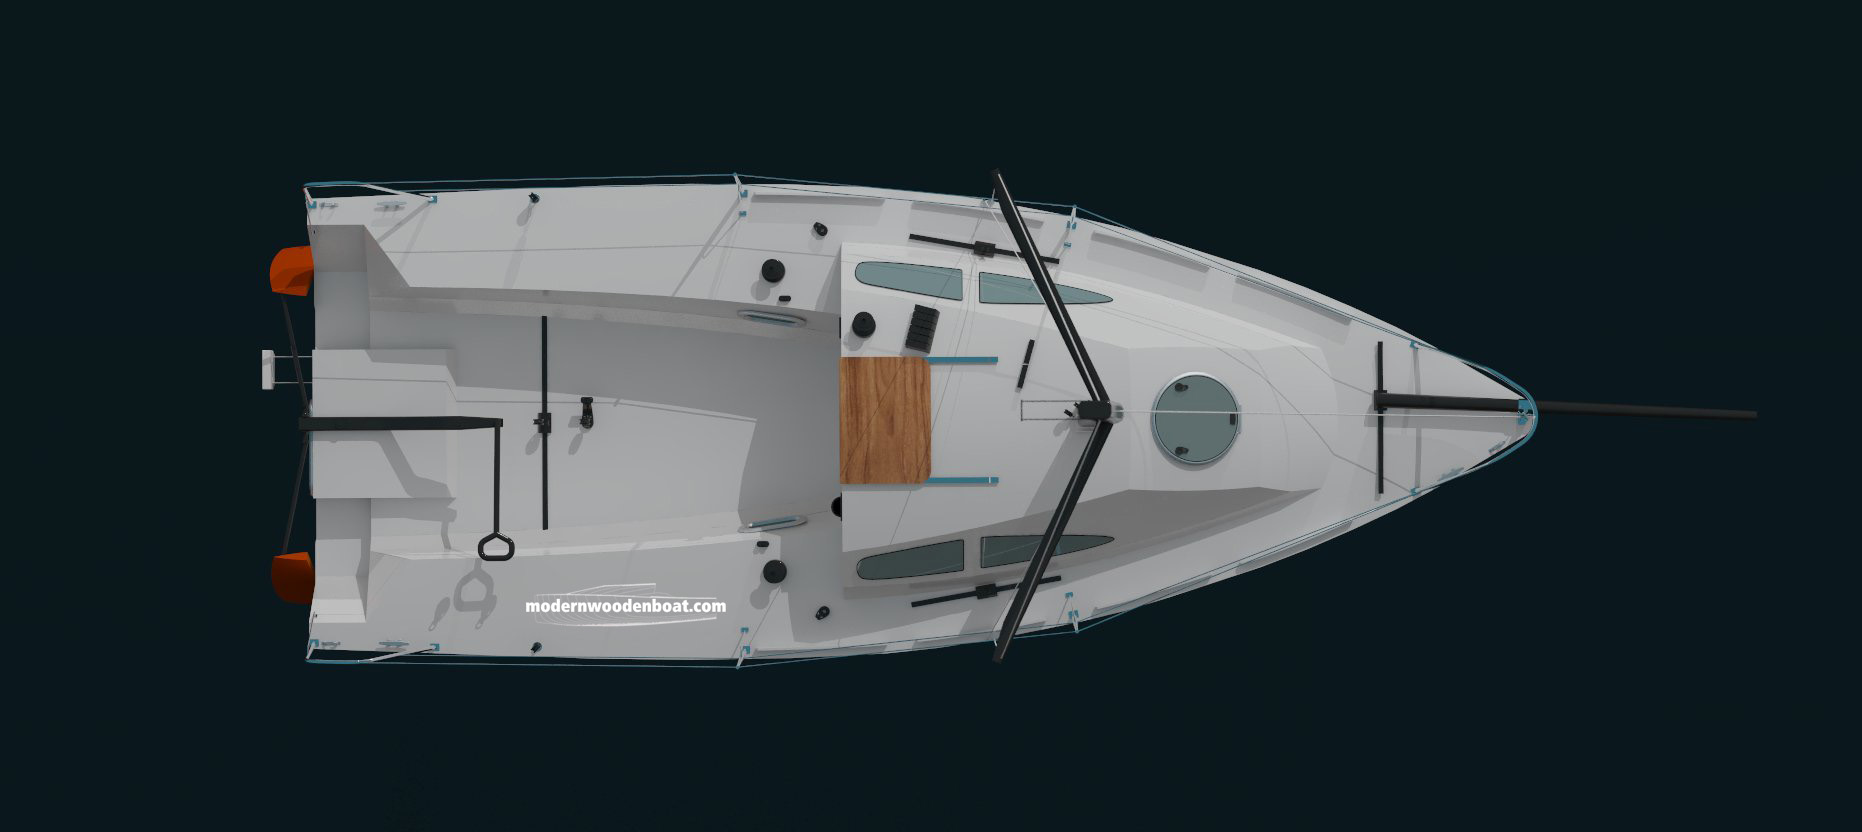 idea-21-radiuschine-epoxy-plywood-sportboat-06